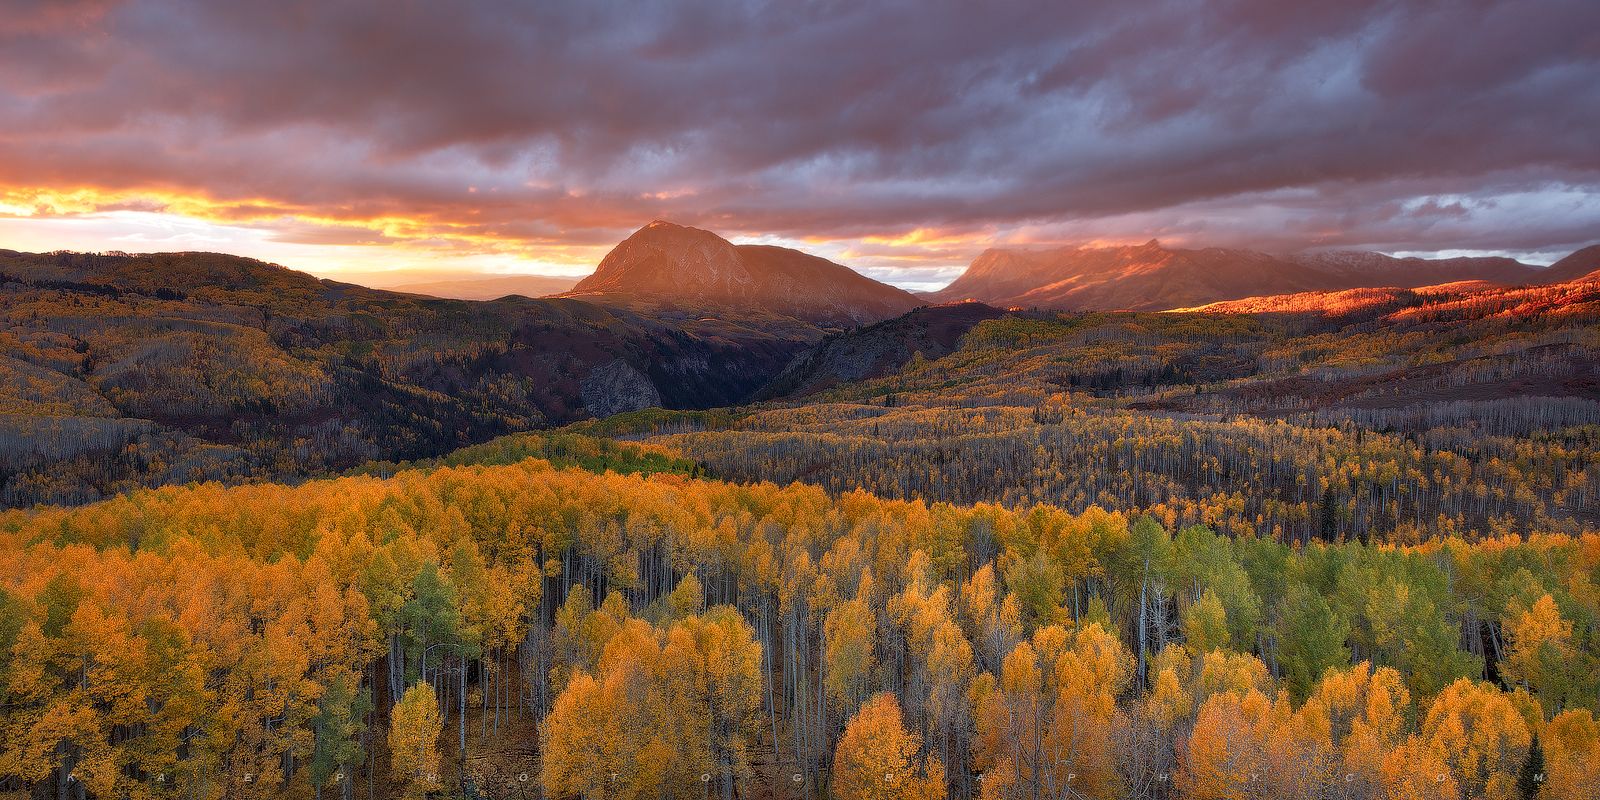 Beautiful Marcellina Mountain surrounded by vibrant reds, yellows, and orange aspen leaves.  This panoramic is one of my personal...